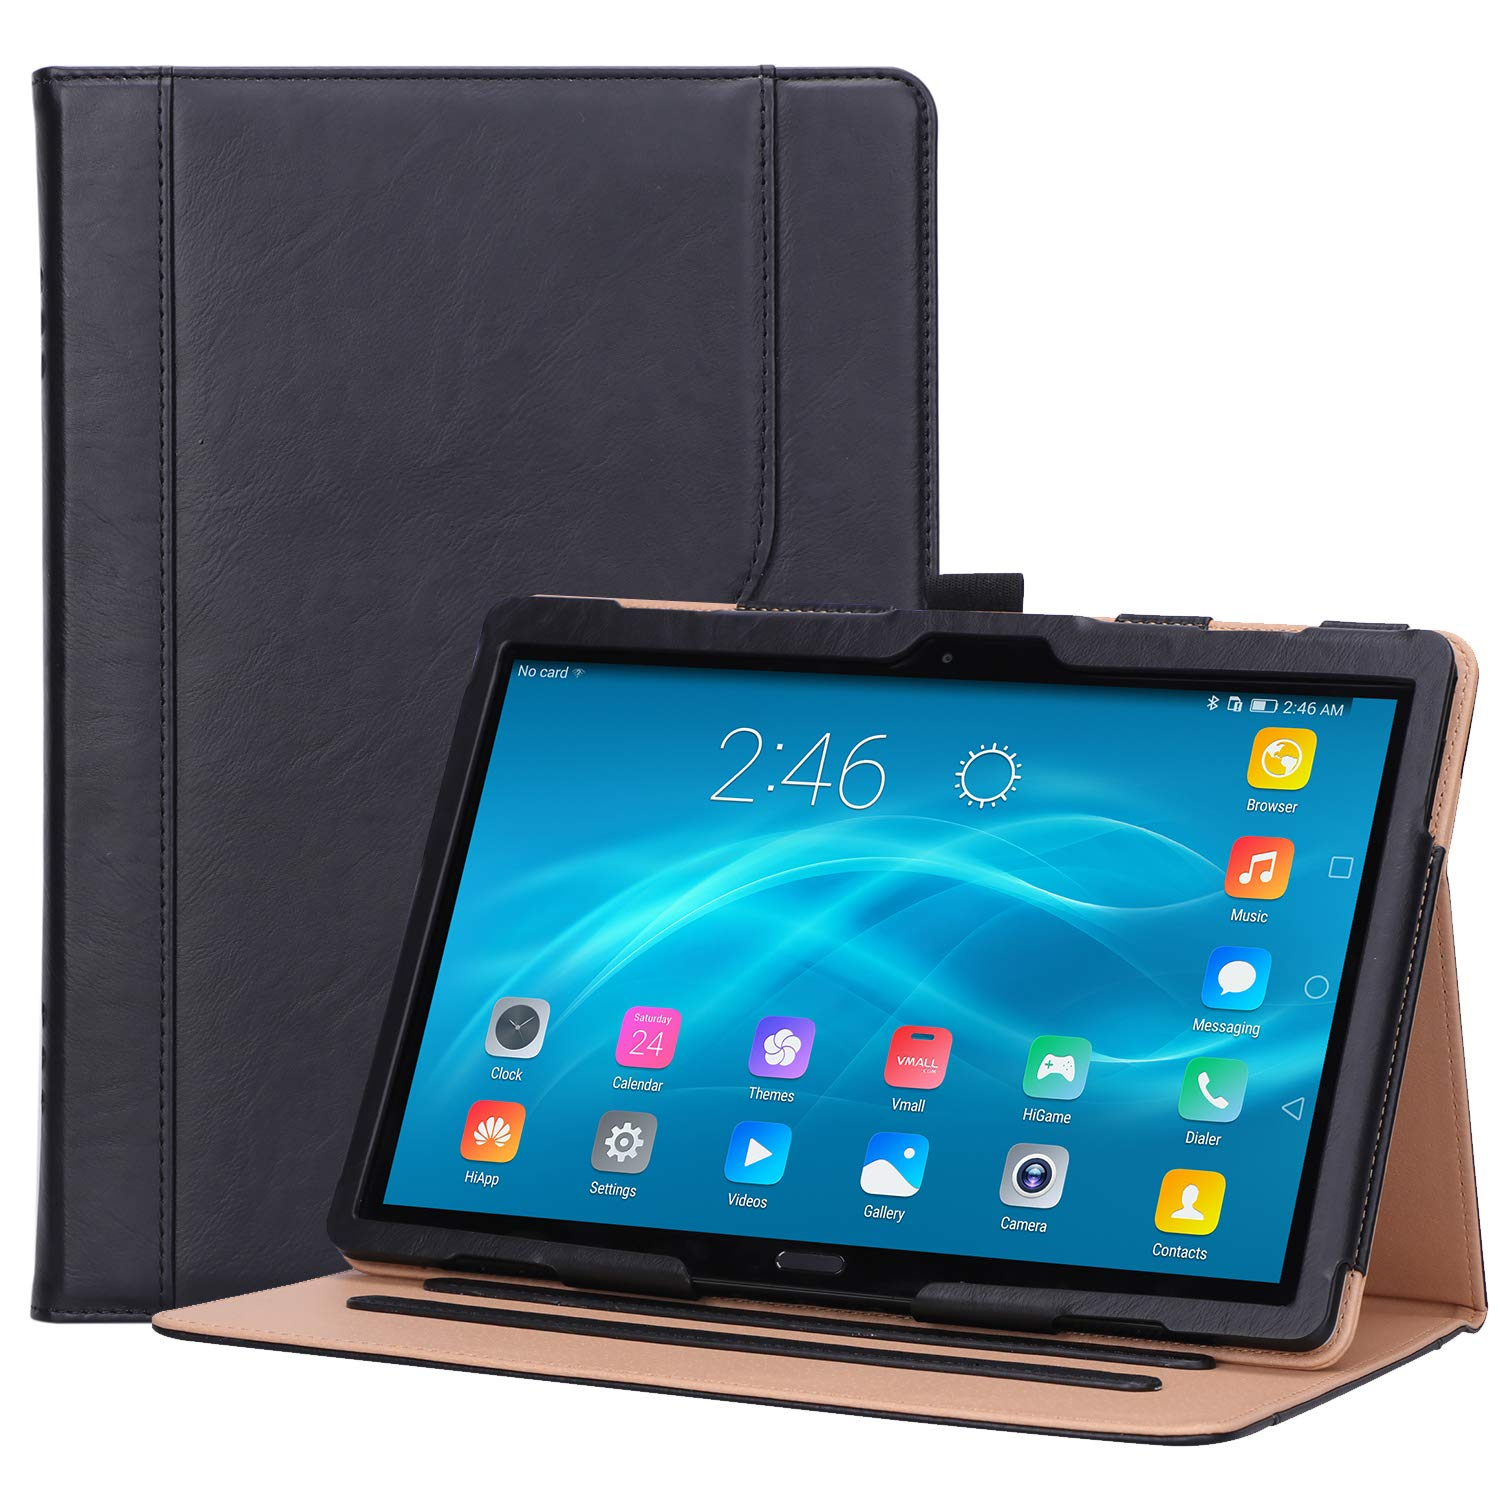 """Procase Lenovo Tab P10 / M10 10.1 Case, Stand Folio Case Cover for Lenovo Tab P10 TB-X705F TB-X705L / M10 TB-X605F TB-X505F 10.1"""" Tablet, with Multiple Viewing Angles, Document Card Pocket -Black"""